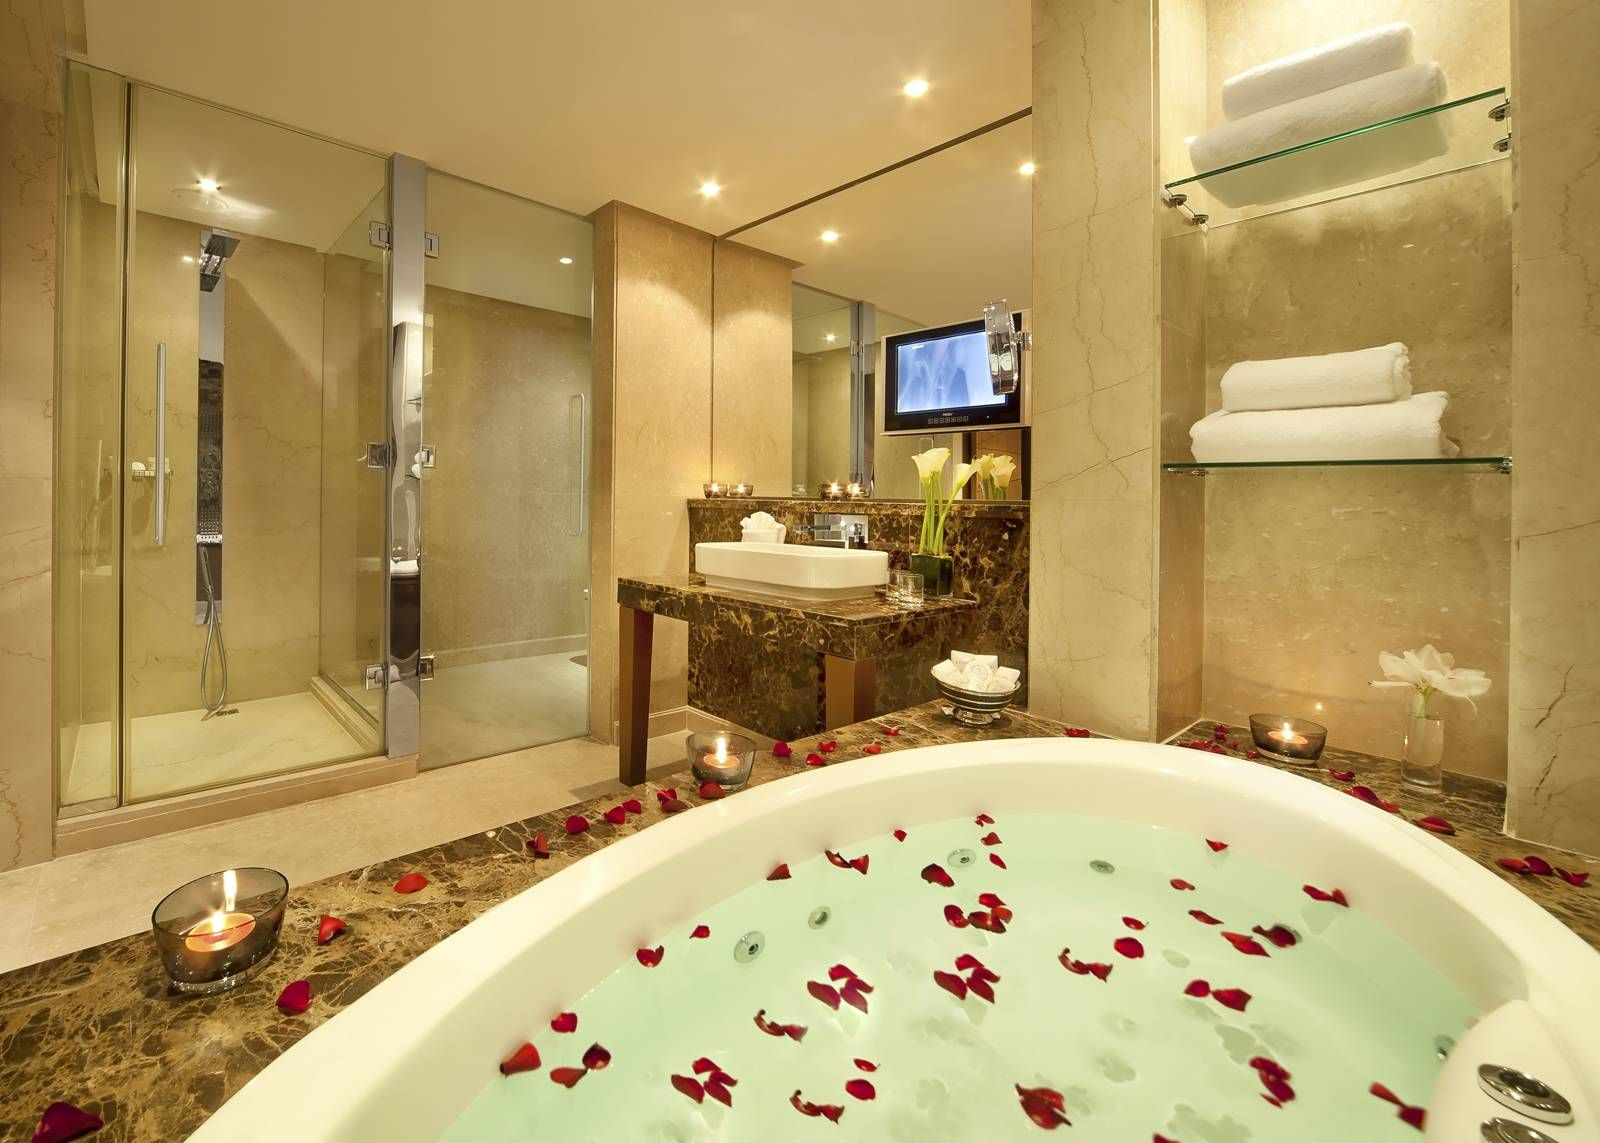 Luxury Bathrooms In Hotels acupressure body jets, automated temperature control, and